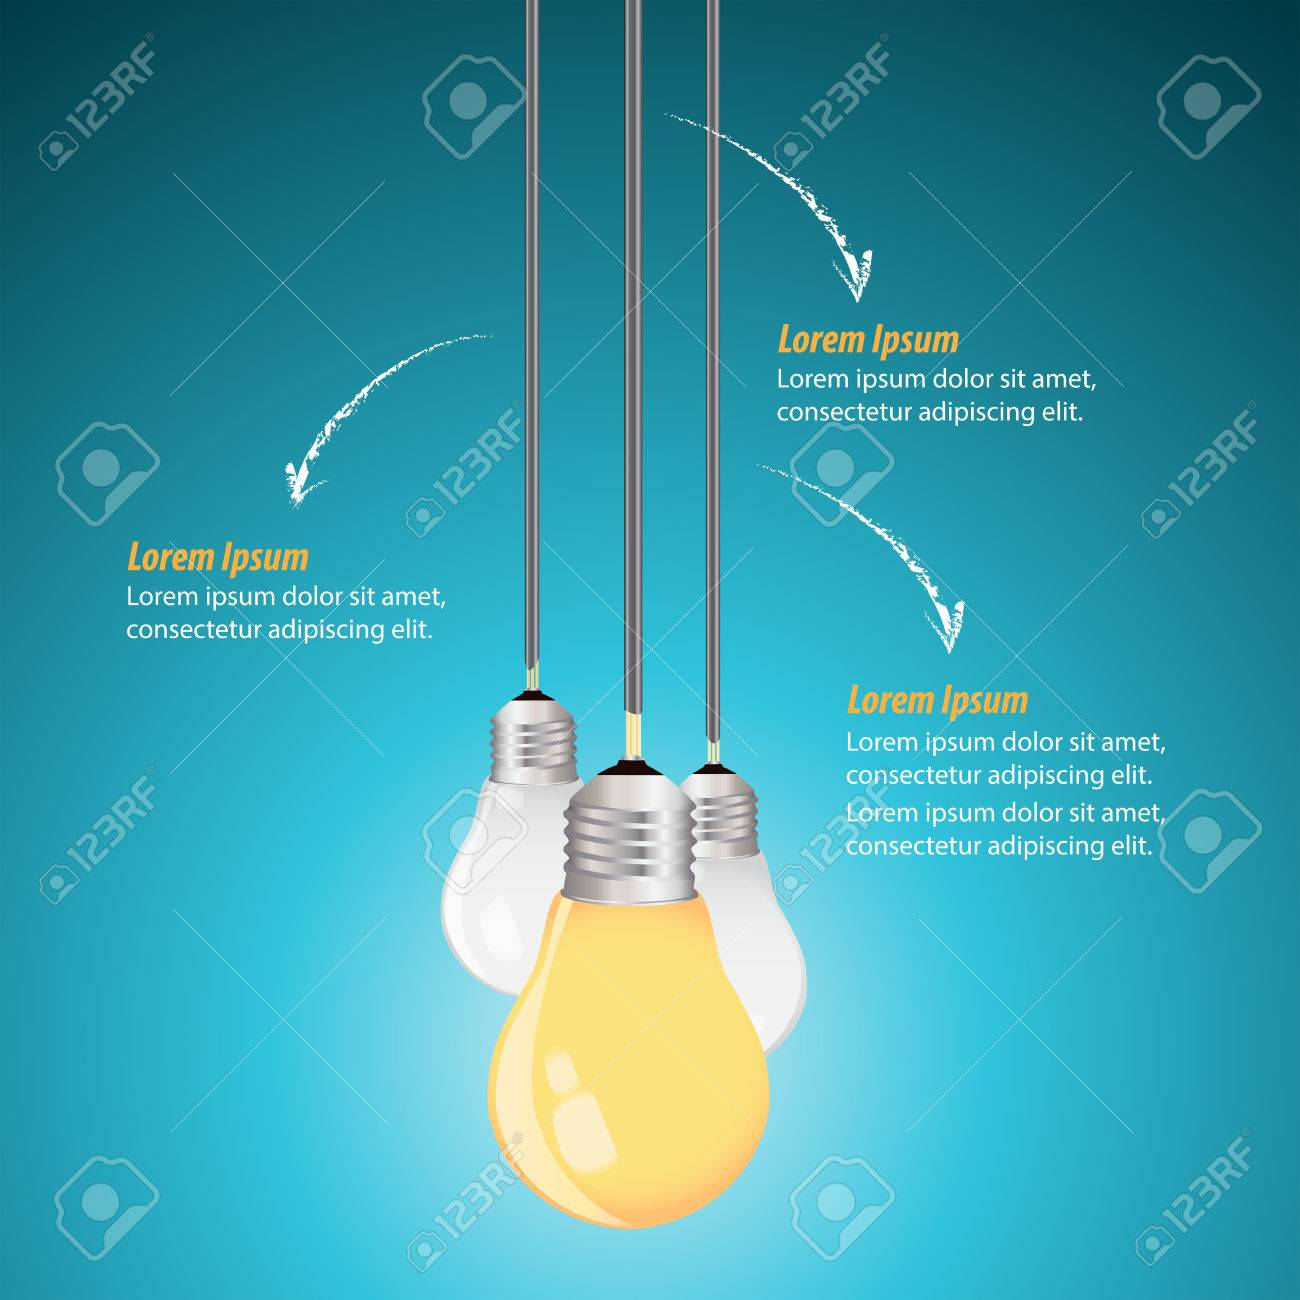 Creative Template with light bulb idea on a blue background Stock Vector - 48105043